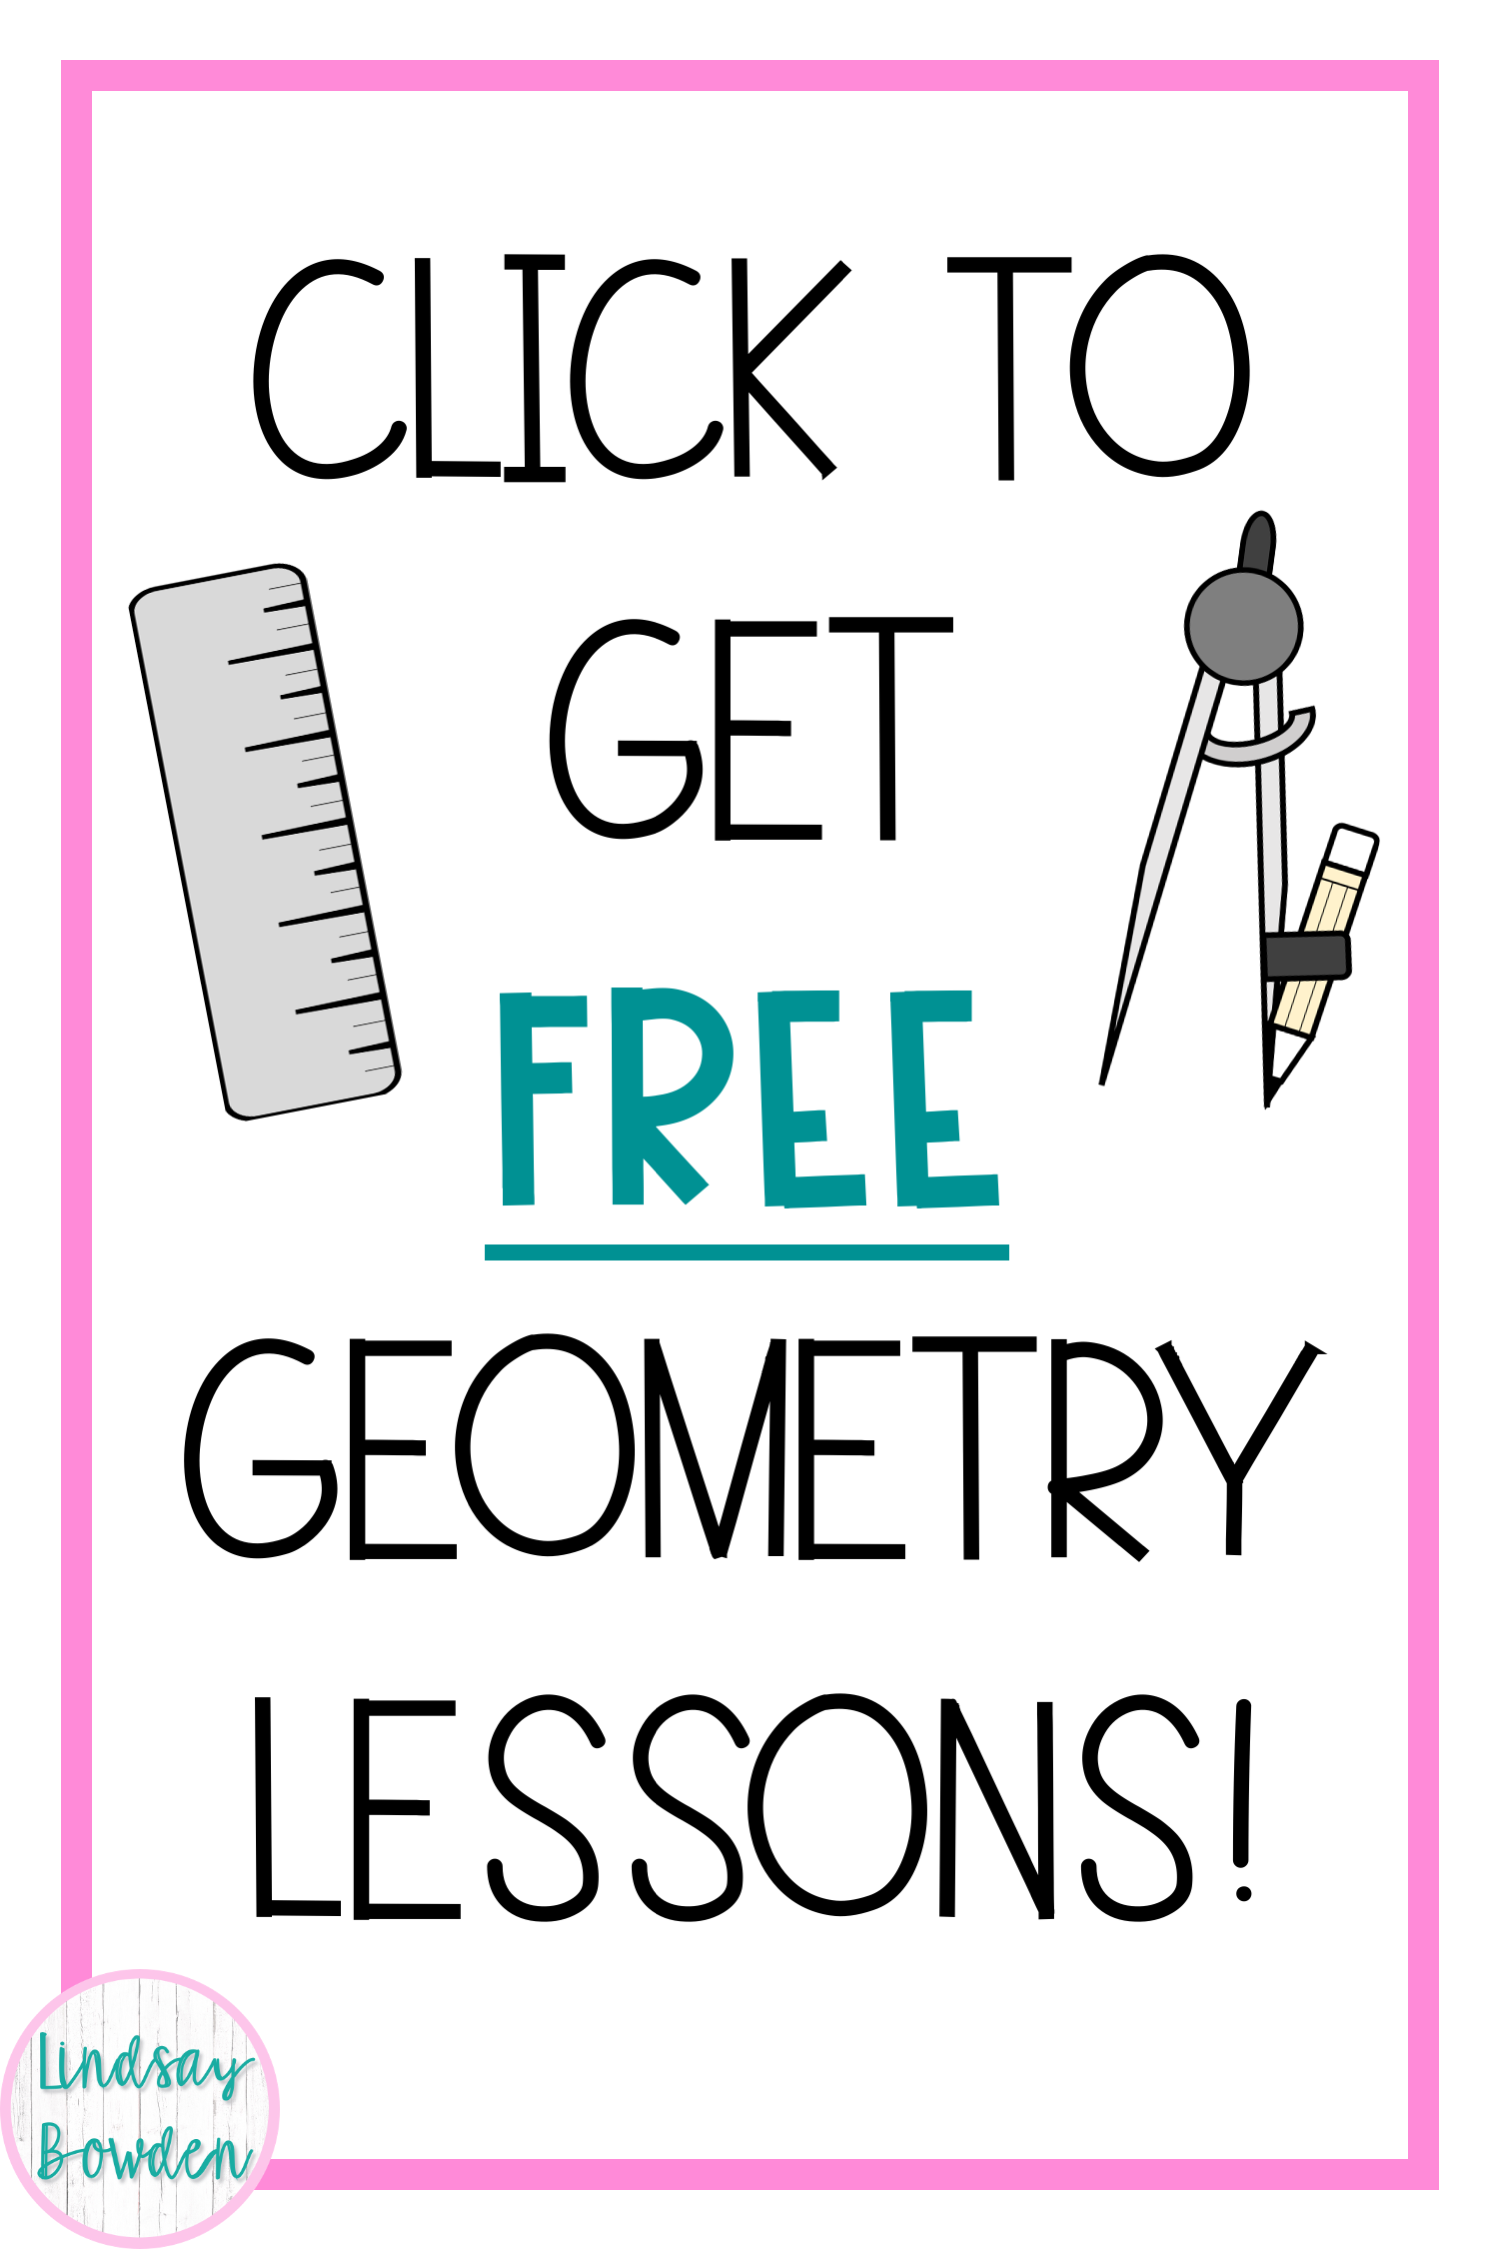 5 Free Geometry Lessons